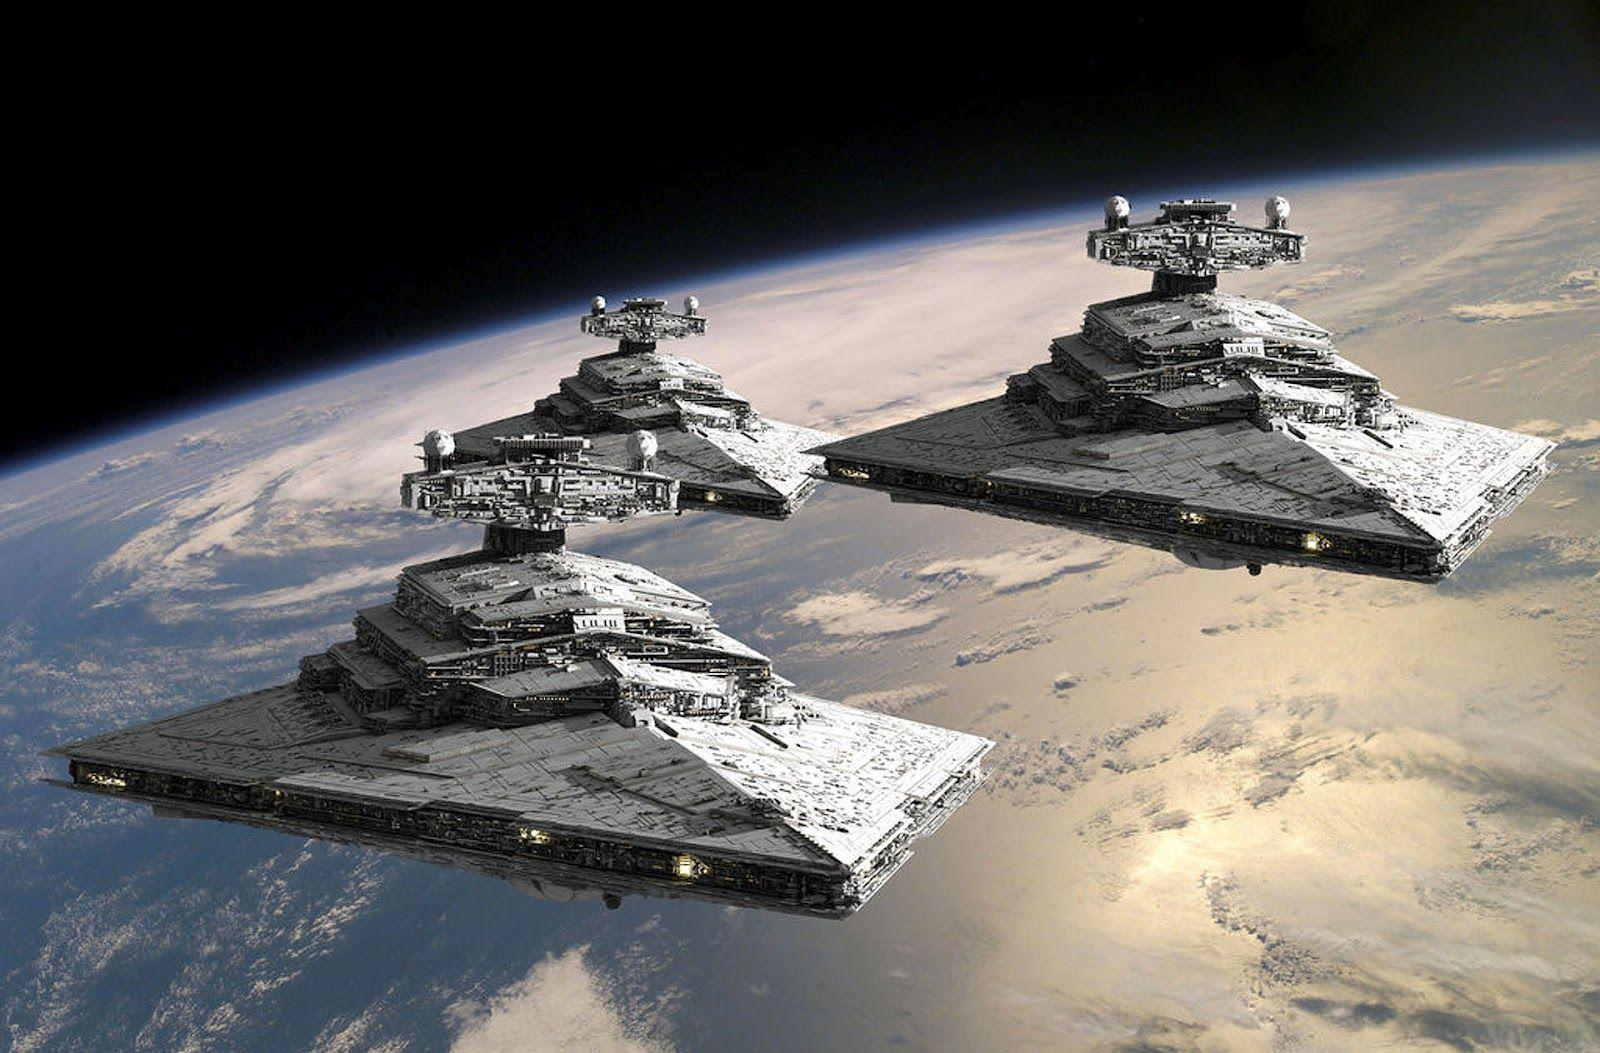 Star Wars Imperial Wallpapers Top Free Star Wars Imperial Backgrounds Wallpaperaccess